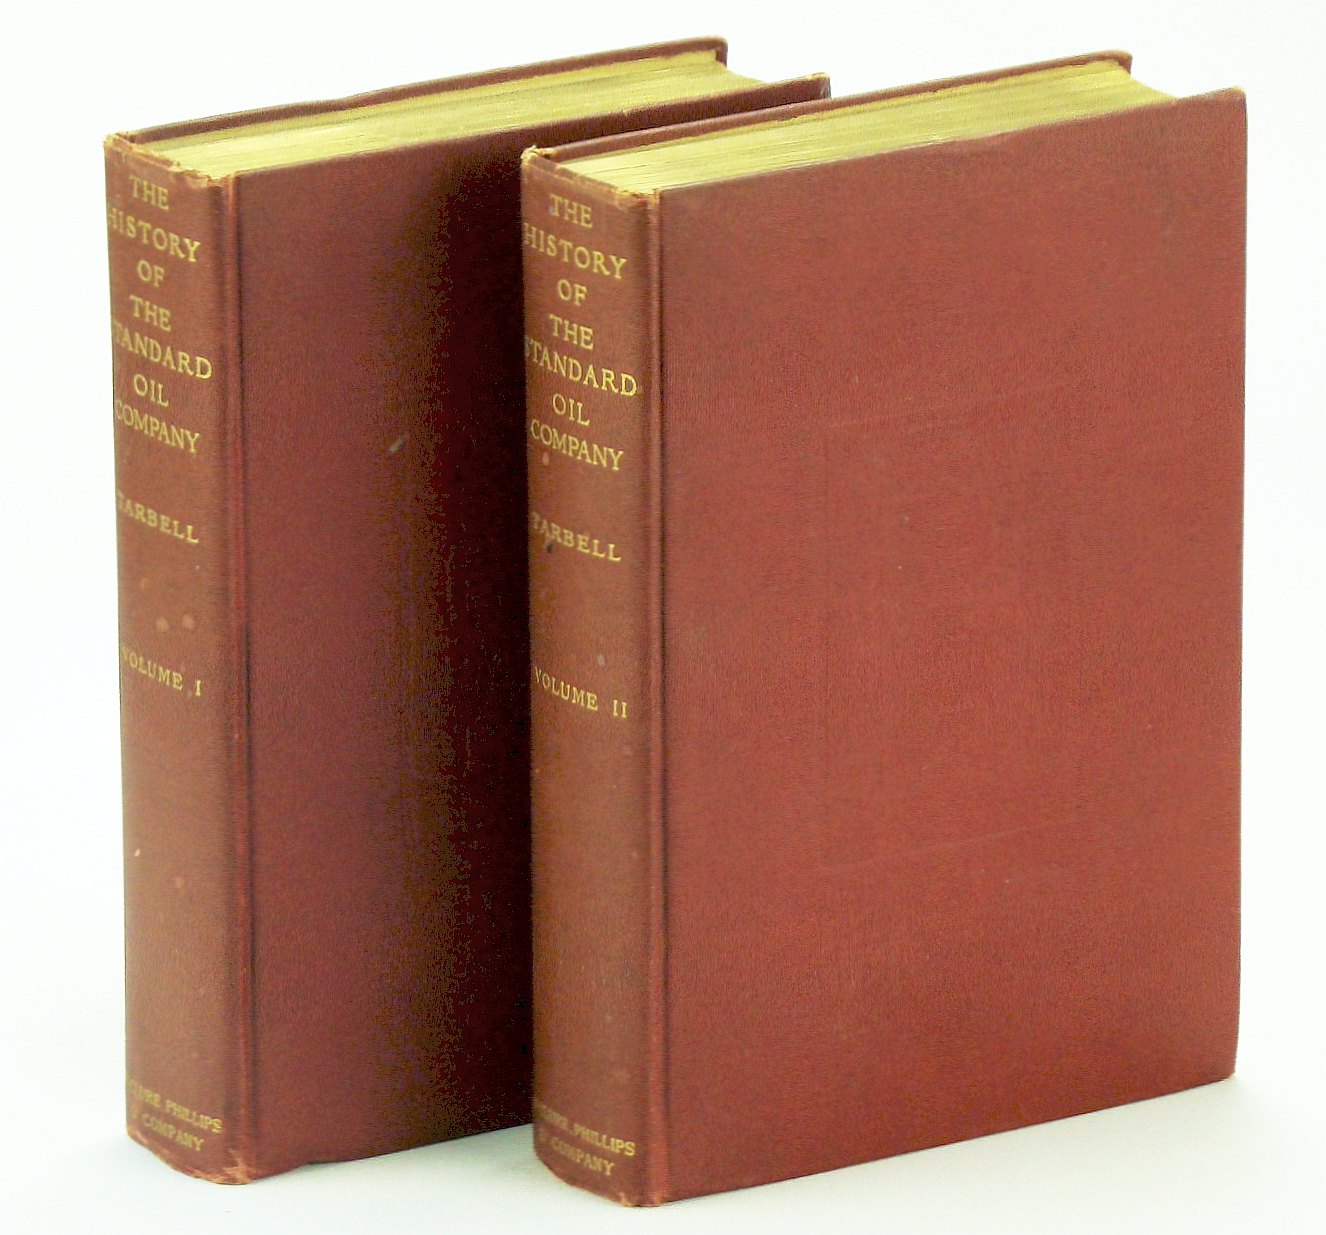 The History of The Standard Oil Company - First Edition, Complete in Two Volumes